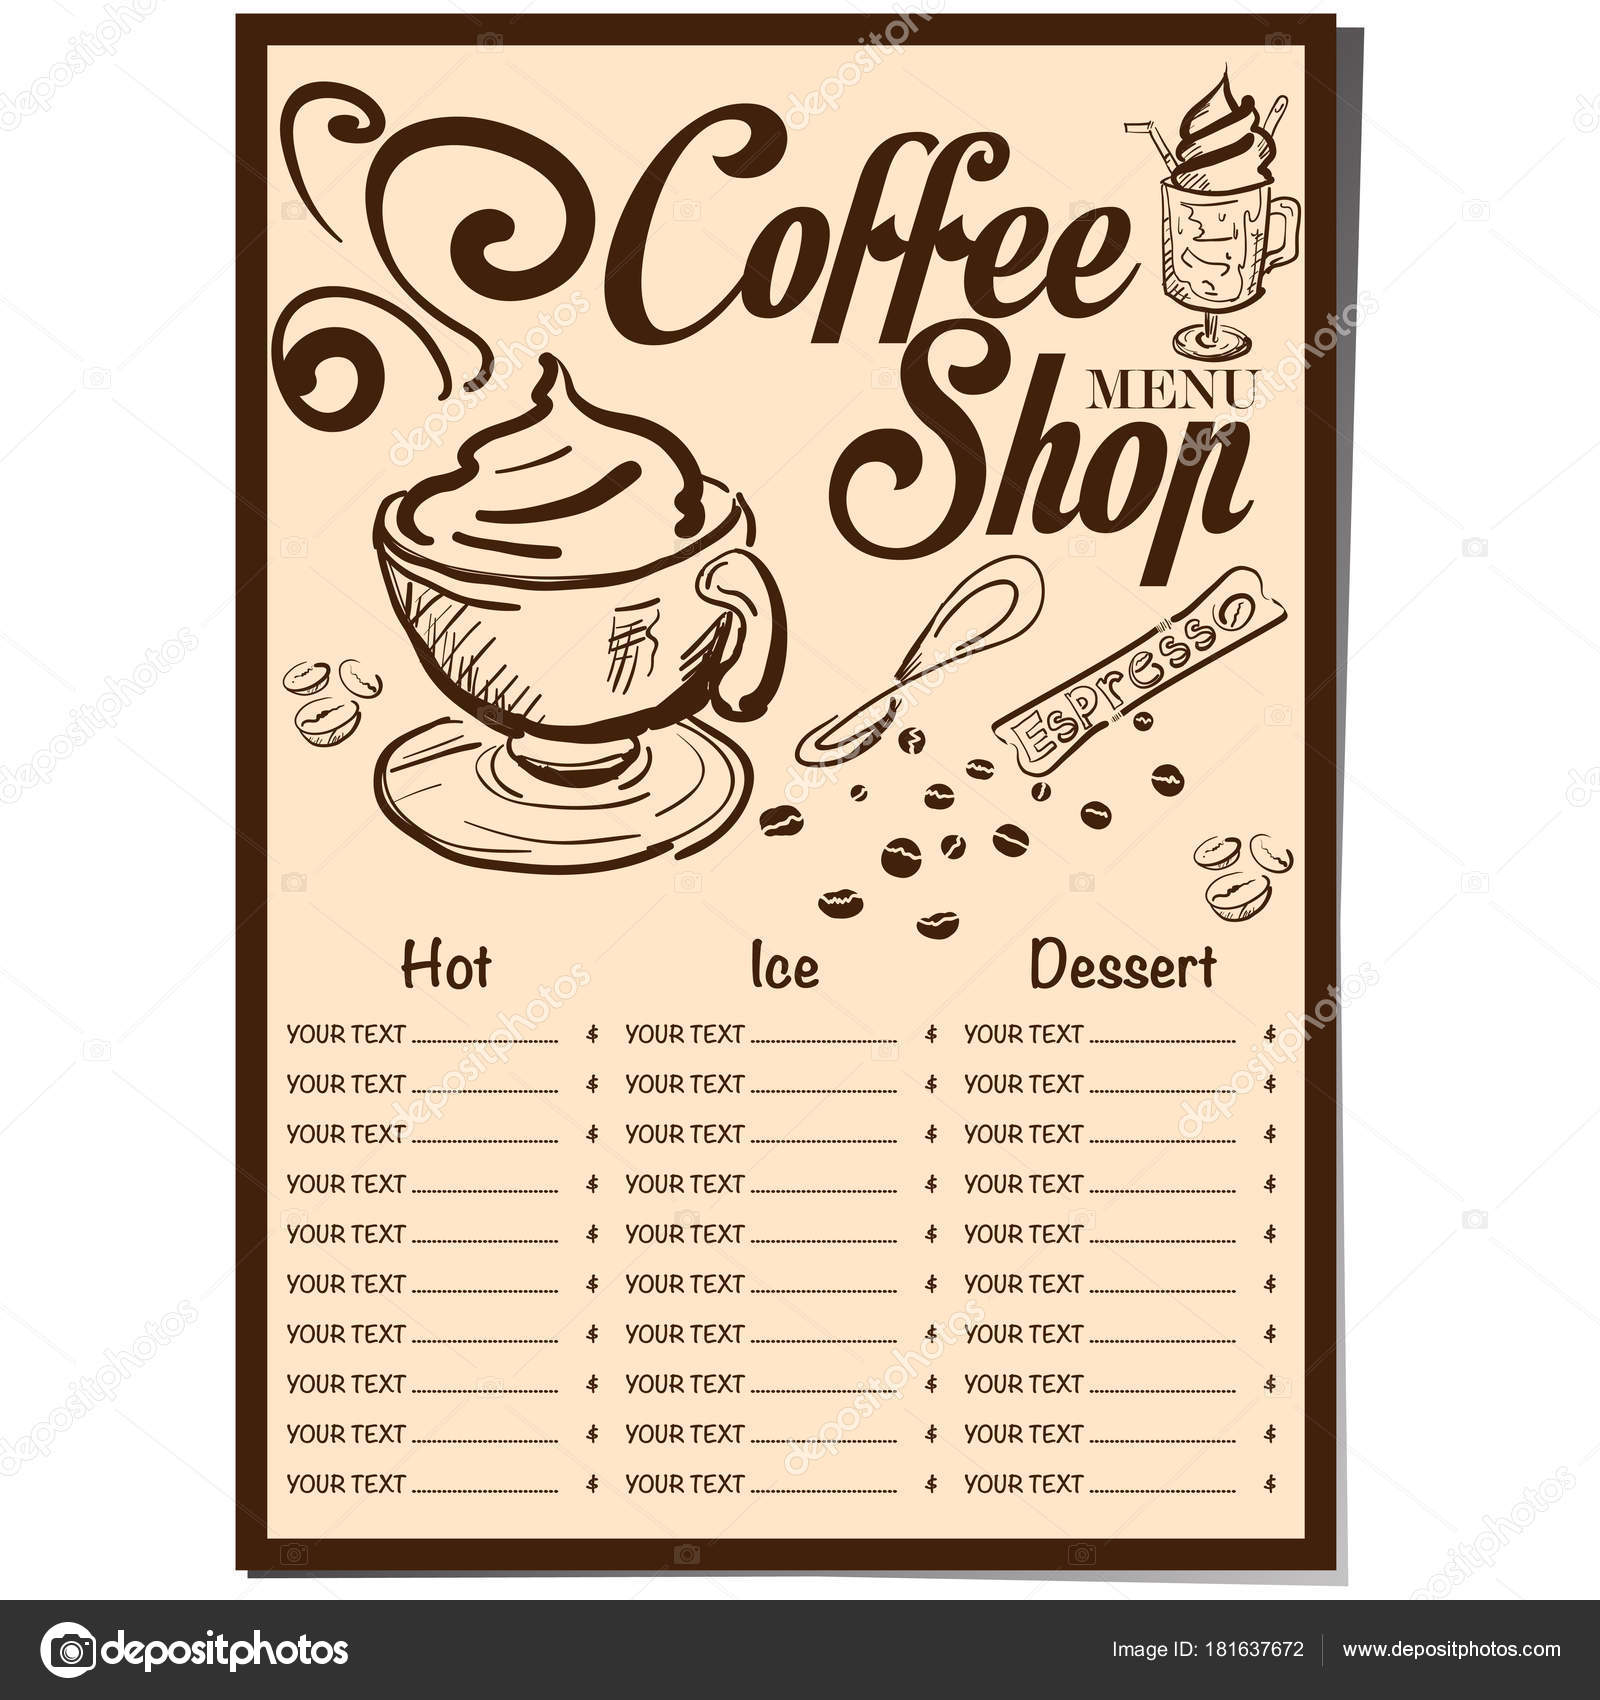 Menu Coffee Shop Cafe Restaurant Template Design Hand Drawing Graphic Stock Vector C Foontntd 181637672